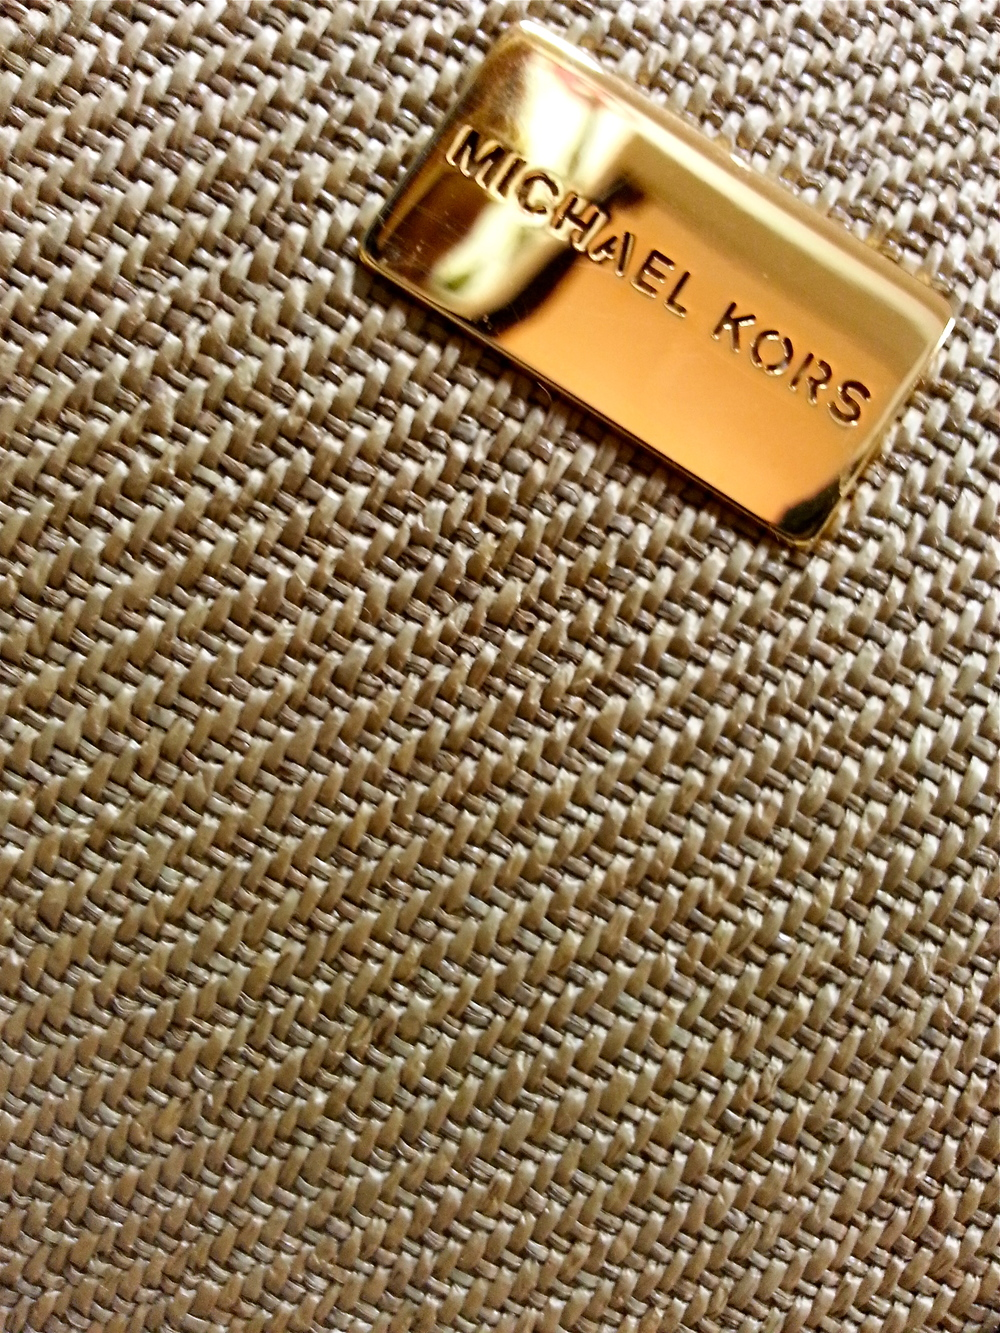 Michael Kors purse detail